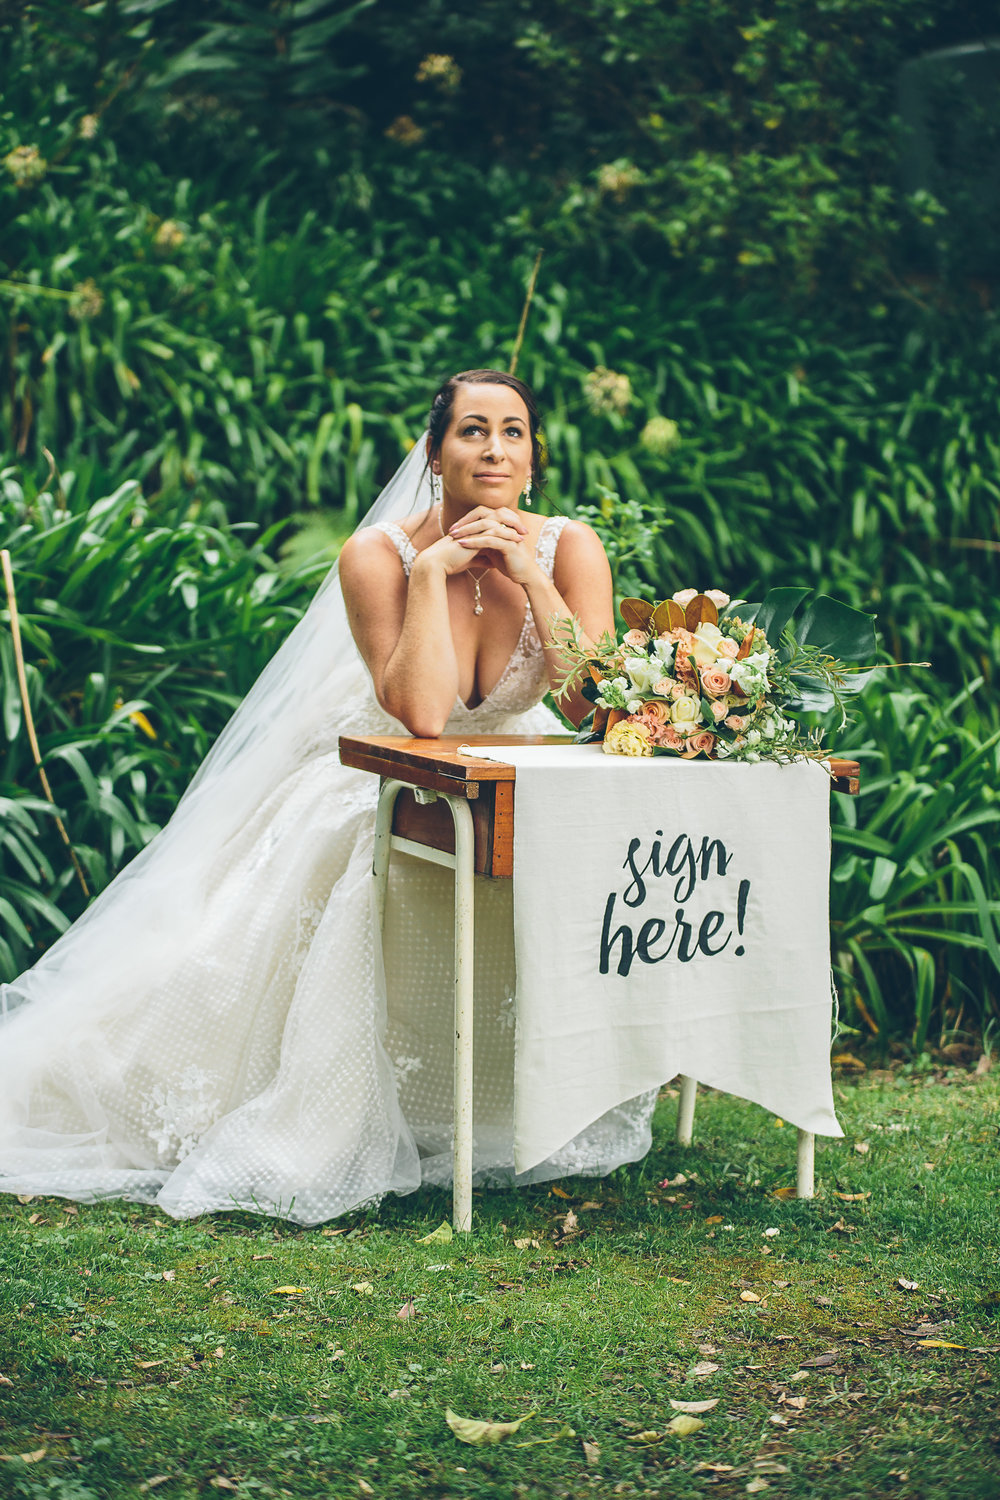 Anglers Lodge | Vintage Woodlands Wedding inspiration | Maggie Sottero Meryl from Astra Bridal | www.borrowedandblue.kiwi